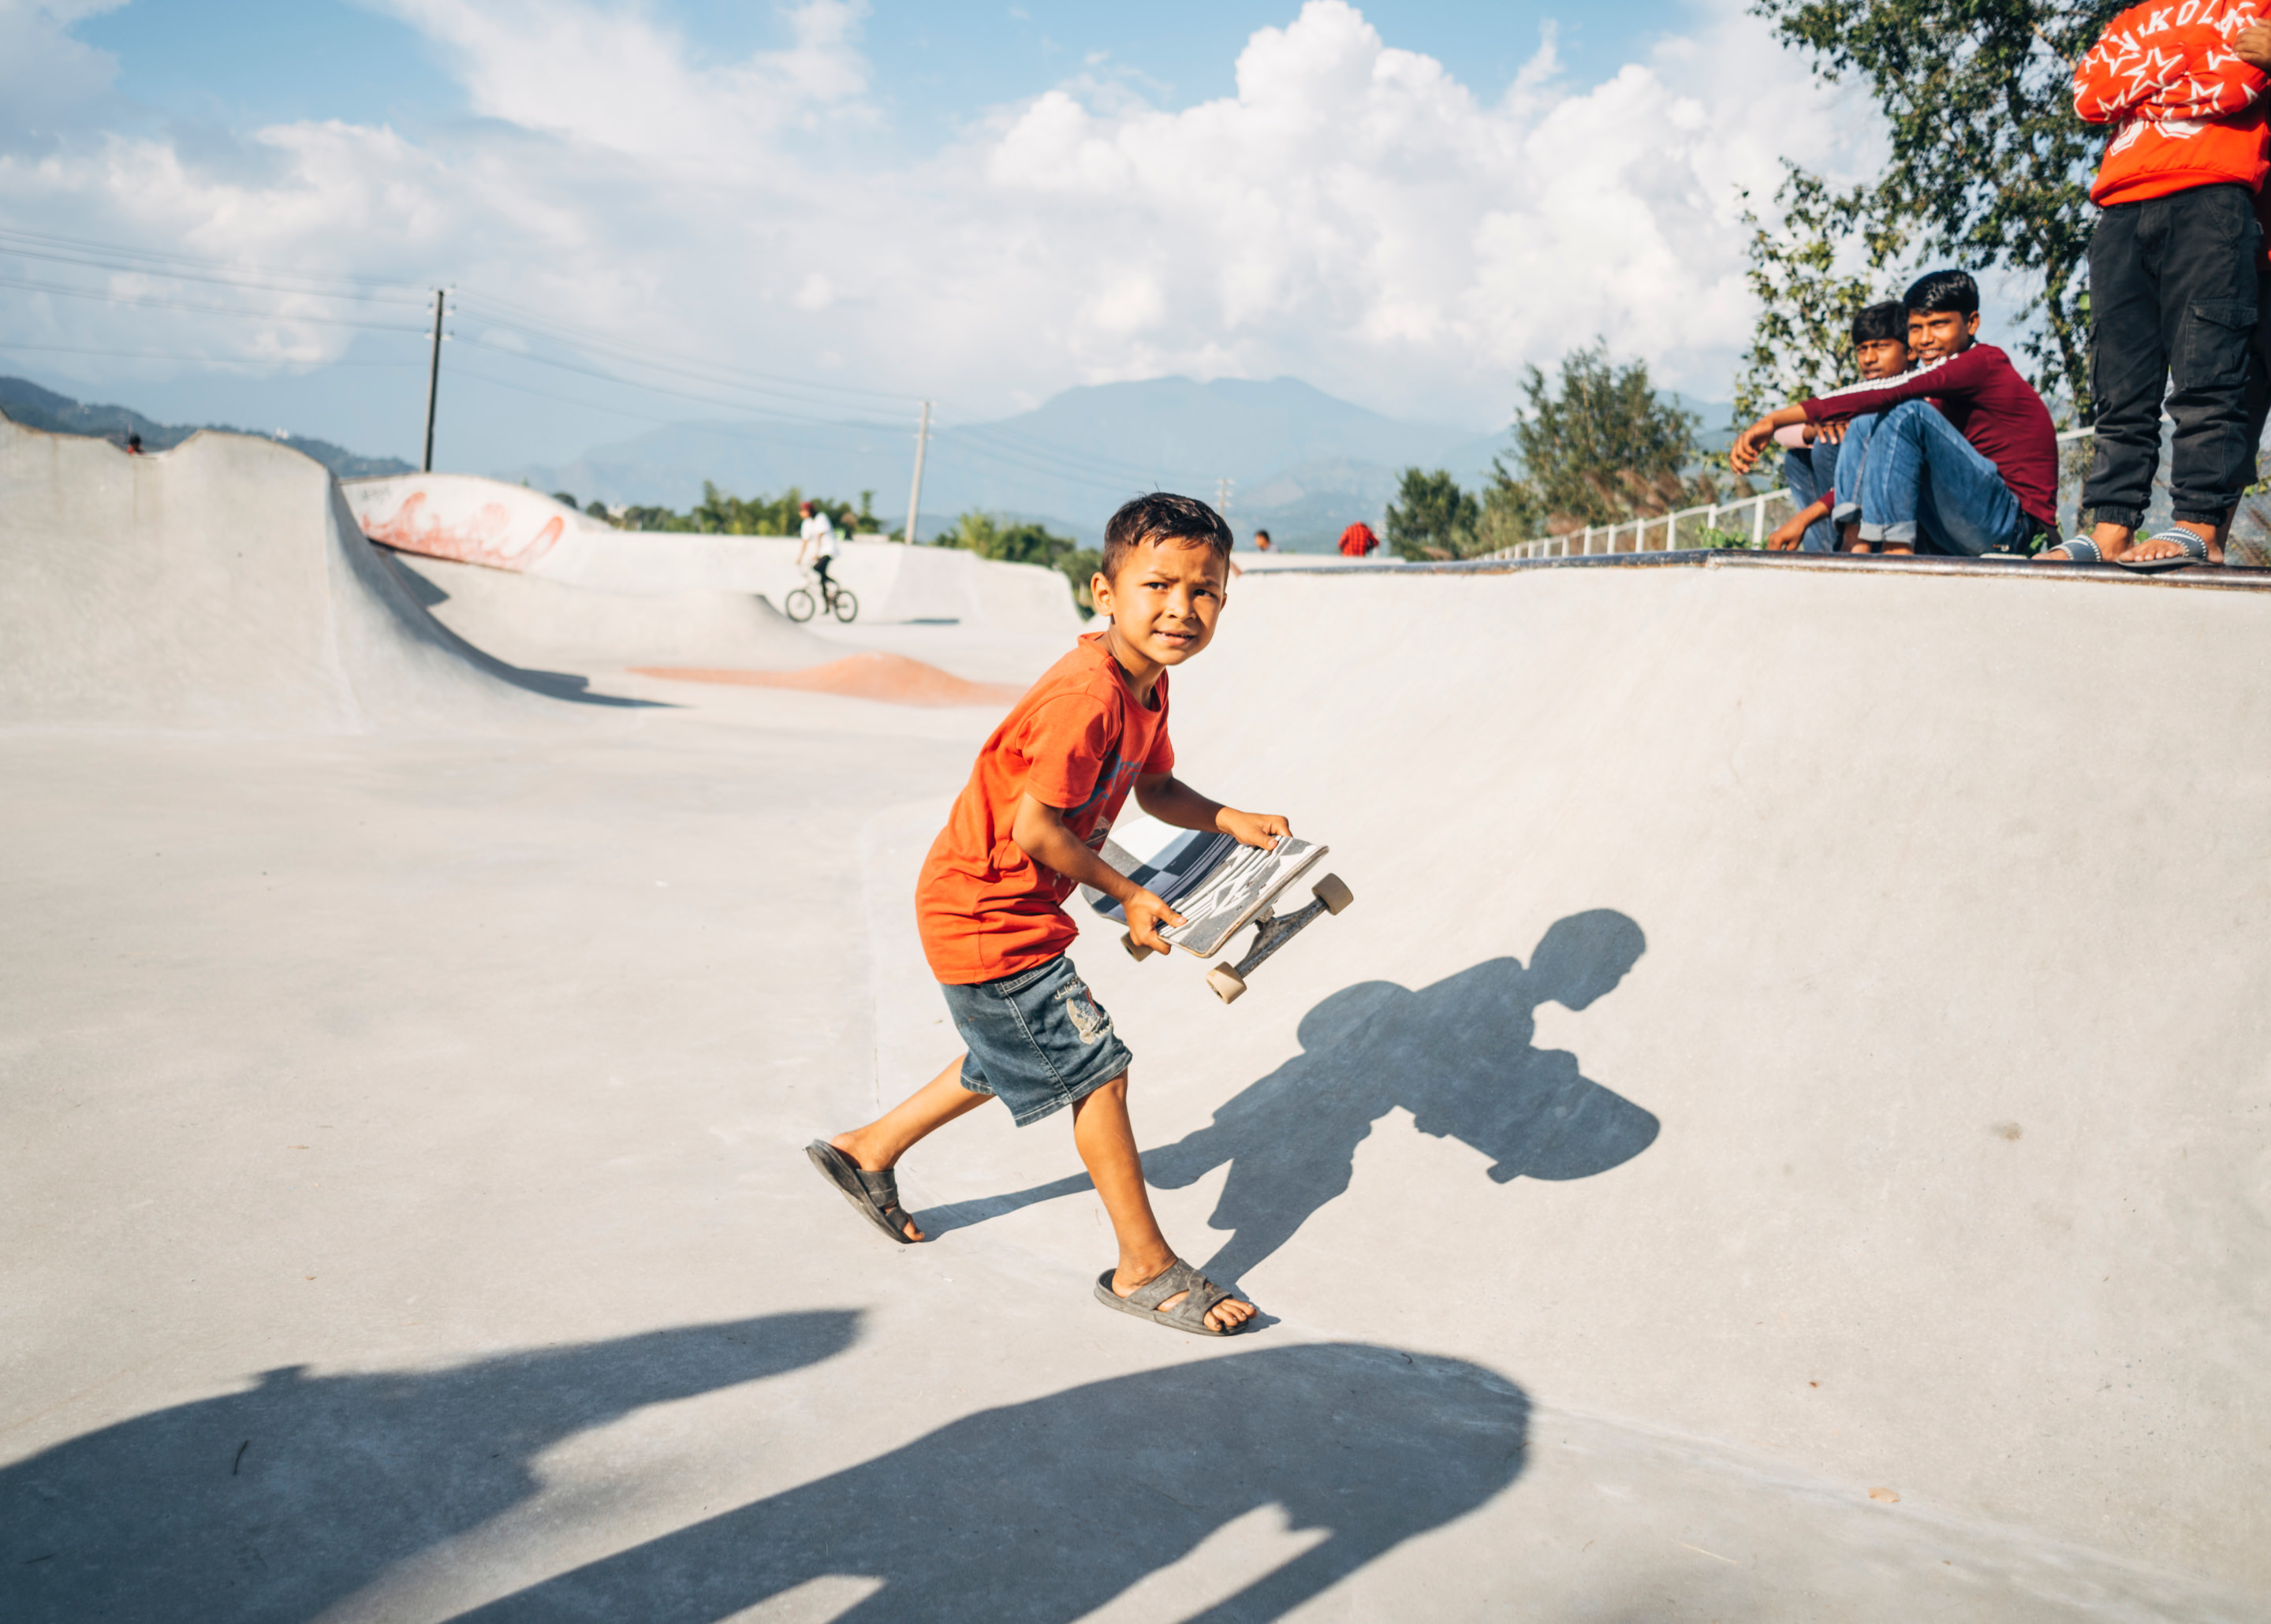 A young child holding a skateboard in a skateboard ramp.